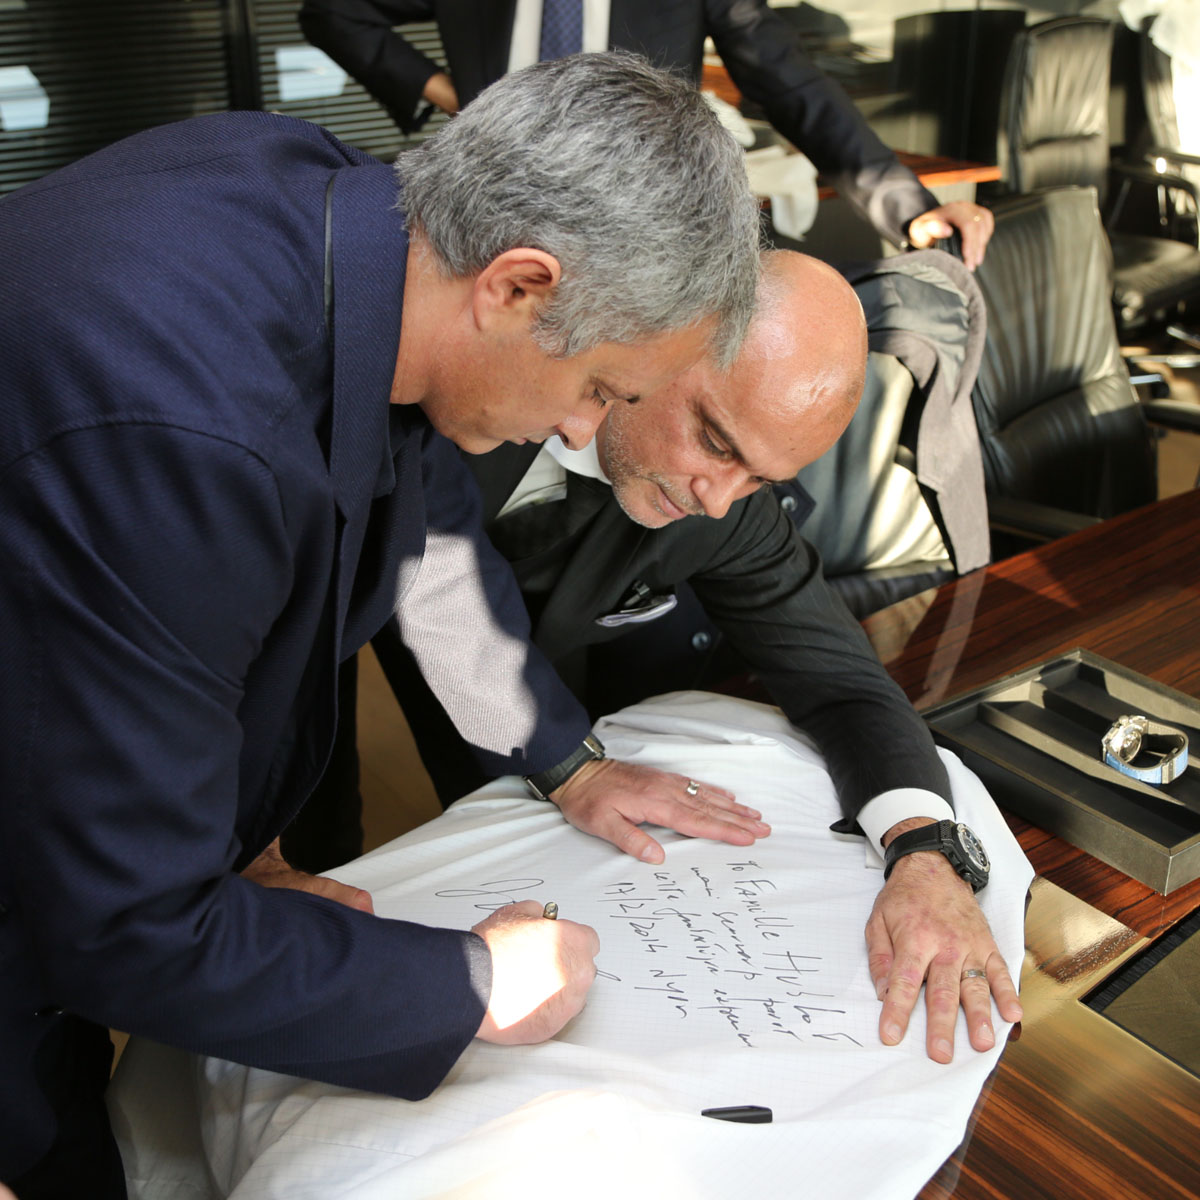 La Cote des Montres : Photo - Football : José Mourinho « The Special One » choisit Hublot